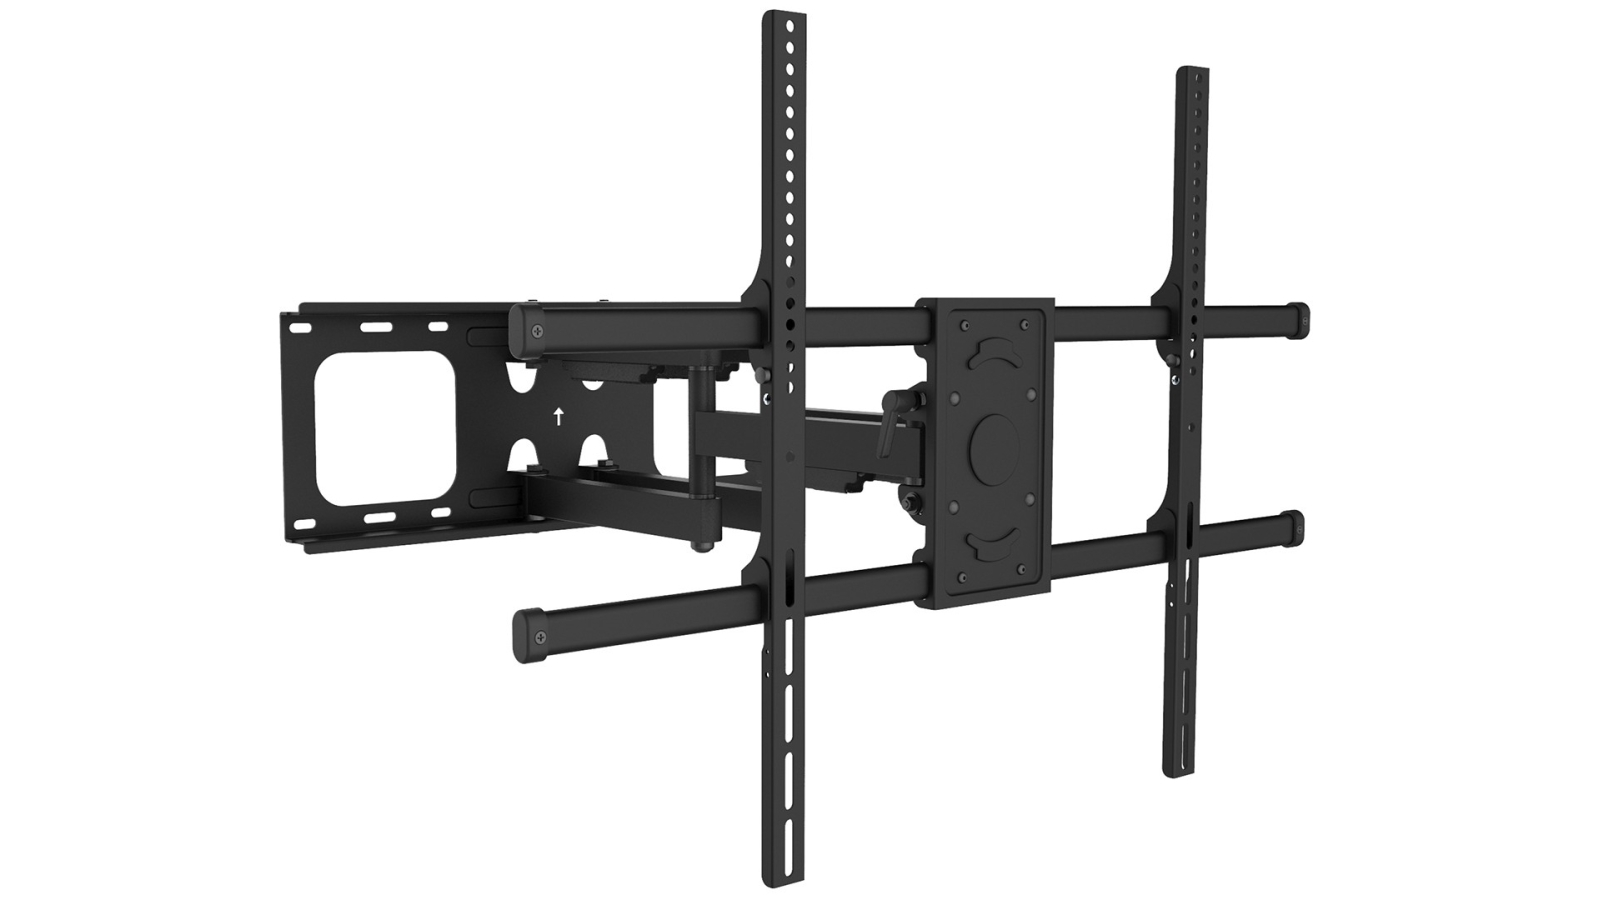 Buy Monster Extra Large Full Motion Tv Mount For 50 90 Inch Tv Harvey Norman Au